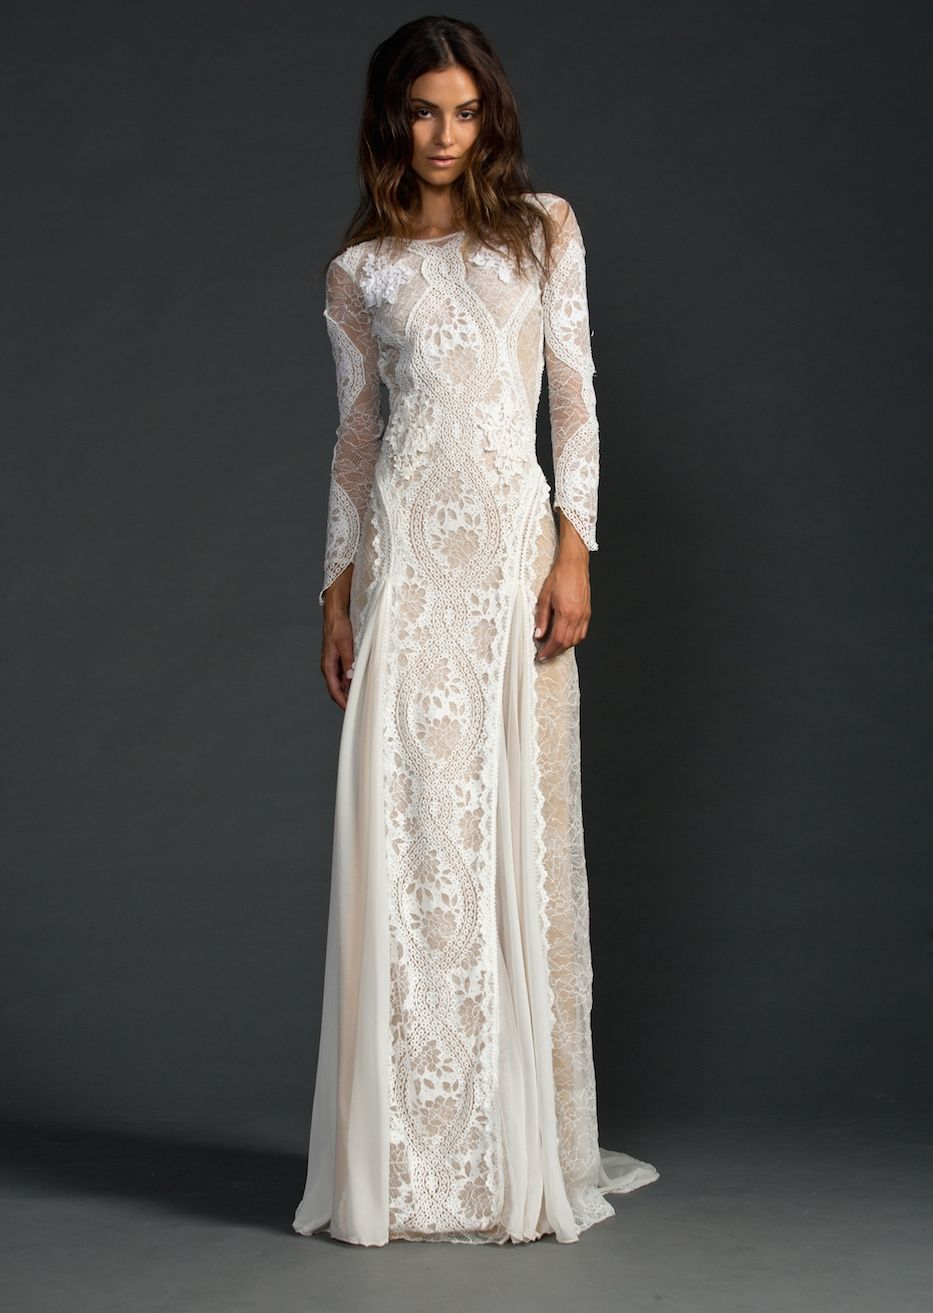 Grace loves lace inca second hand wedding dress sale off dresses grace loves lace inca second hand wedding dress sale off dresses online ireland ombrellifo Choice Image